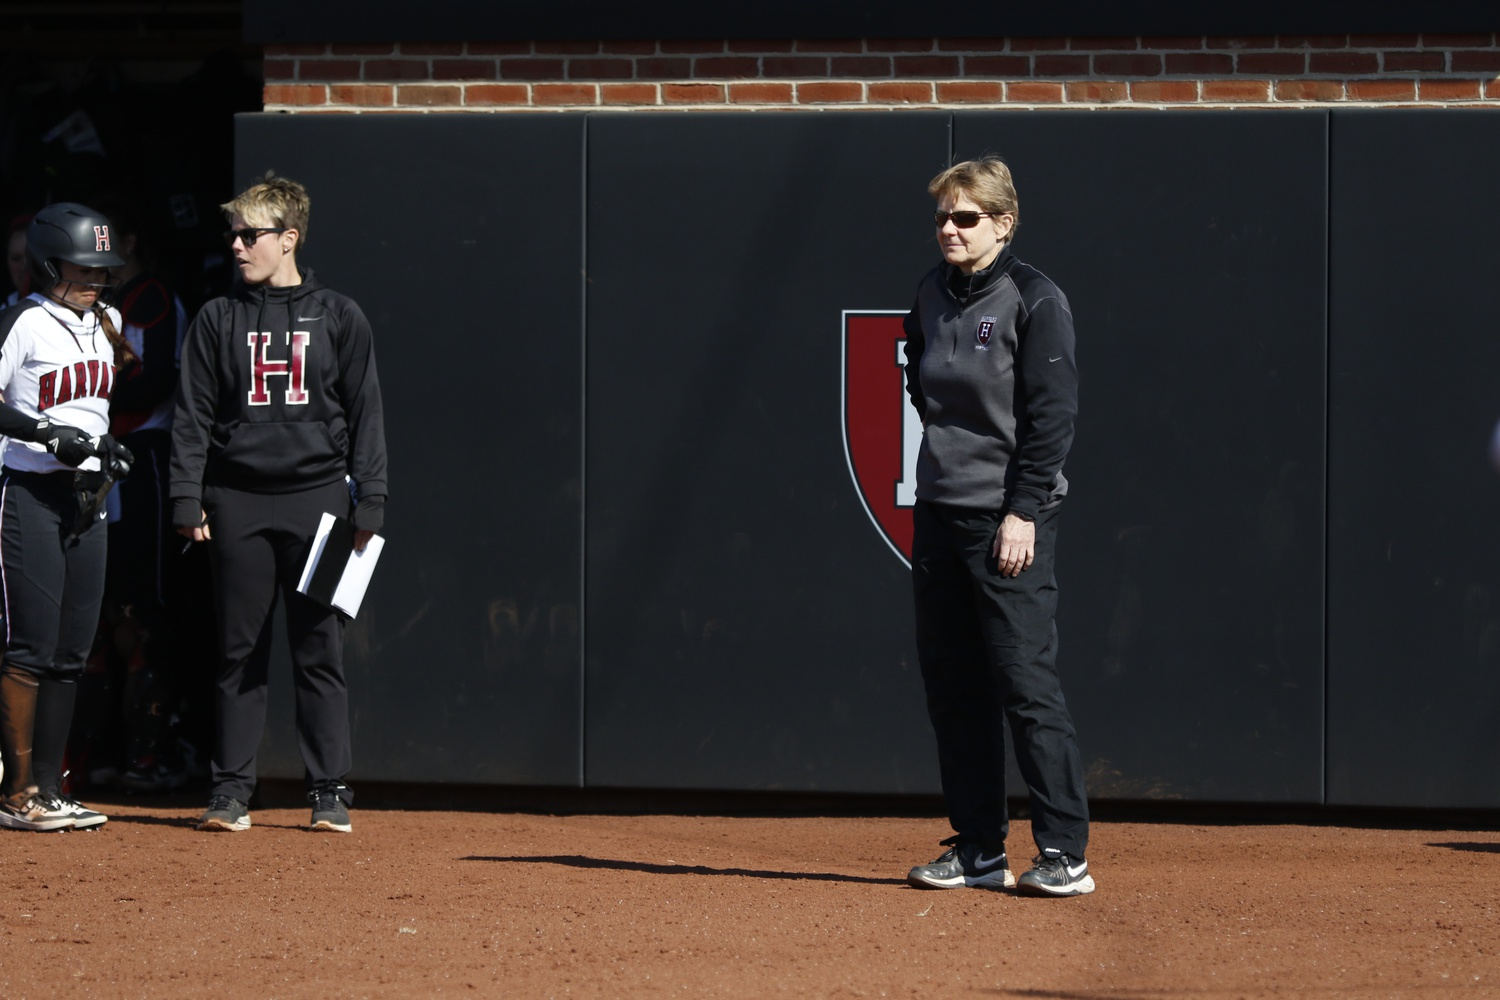 Head Coach Jenny Allard earned her 300th Ivy League victory this month, making her the winningest coach in Ivy League history.